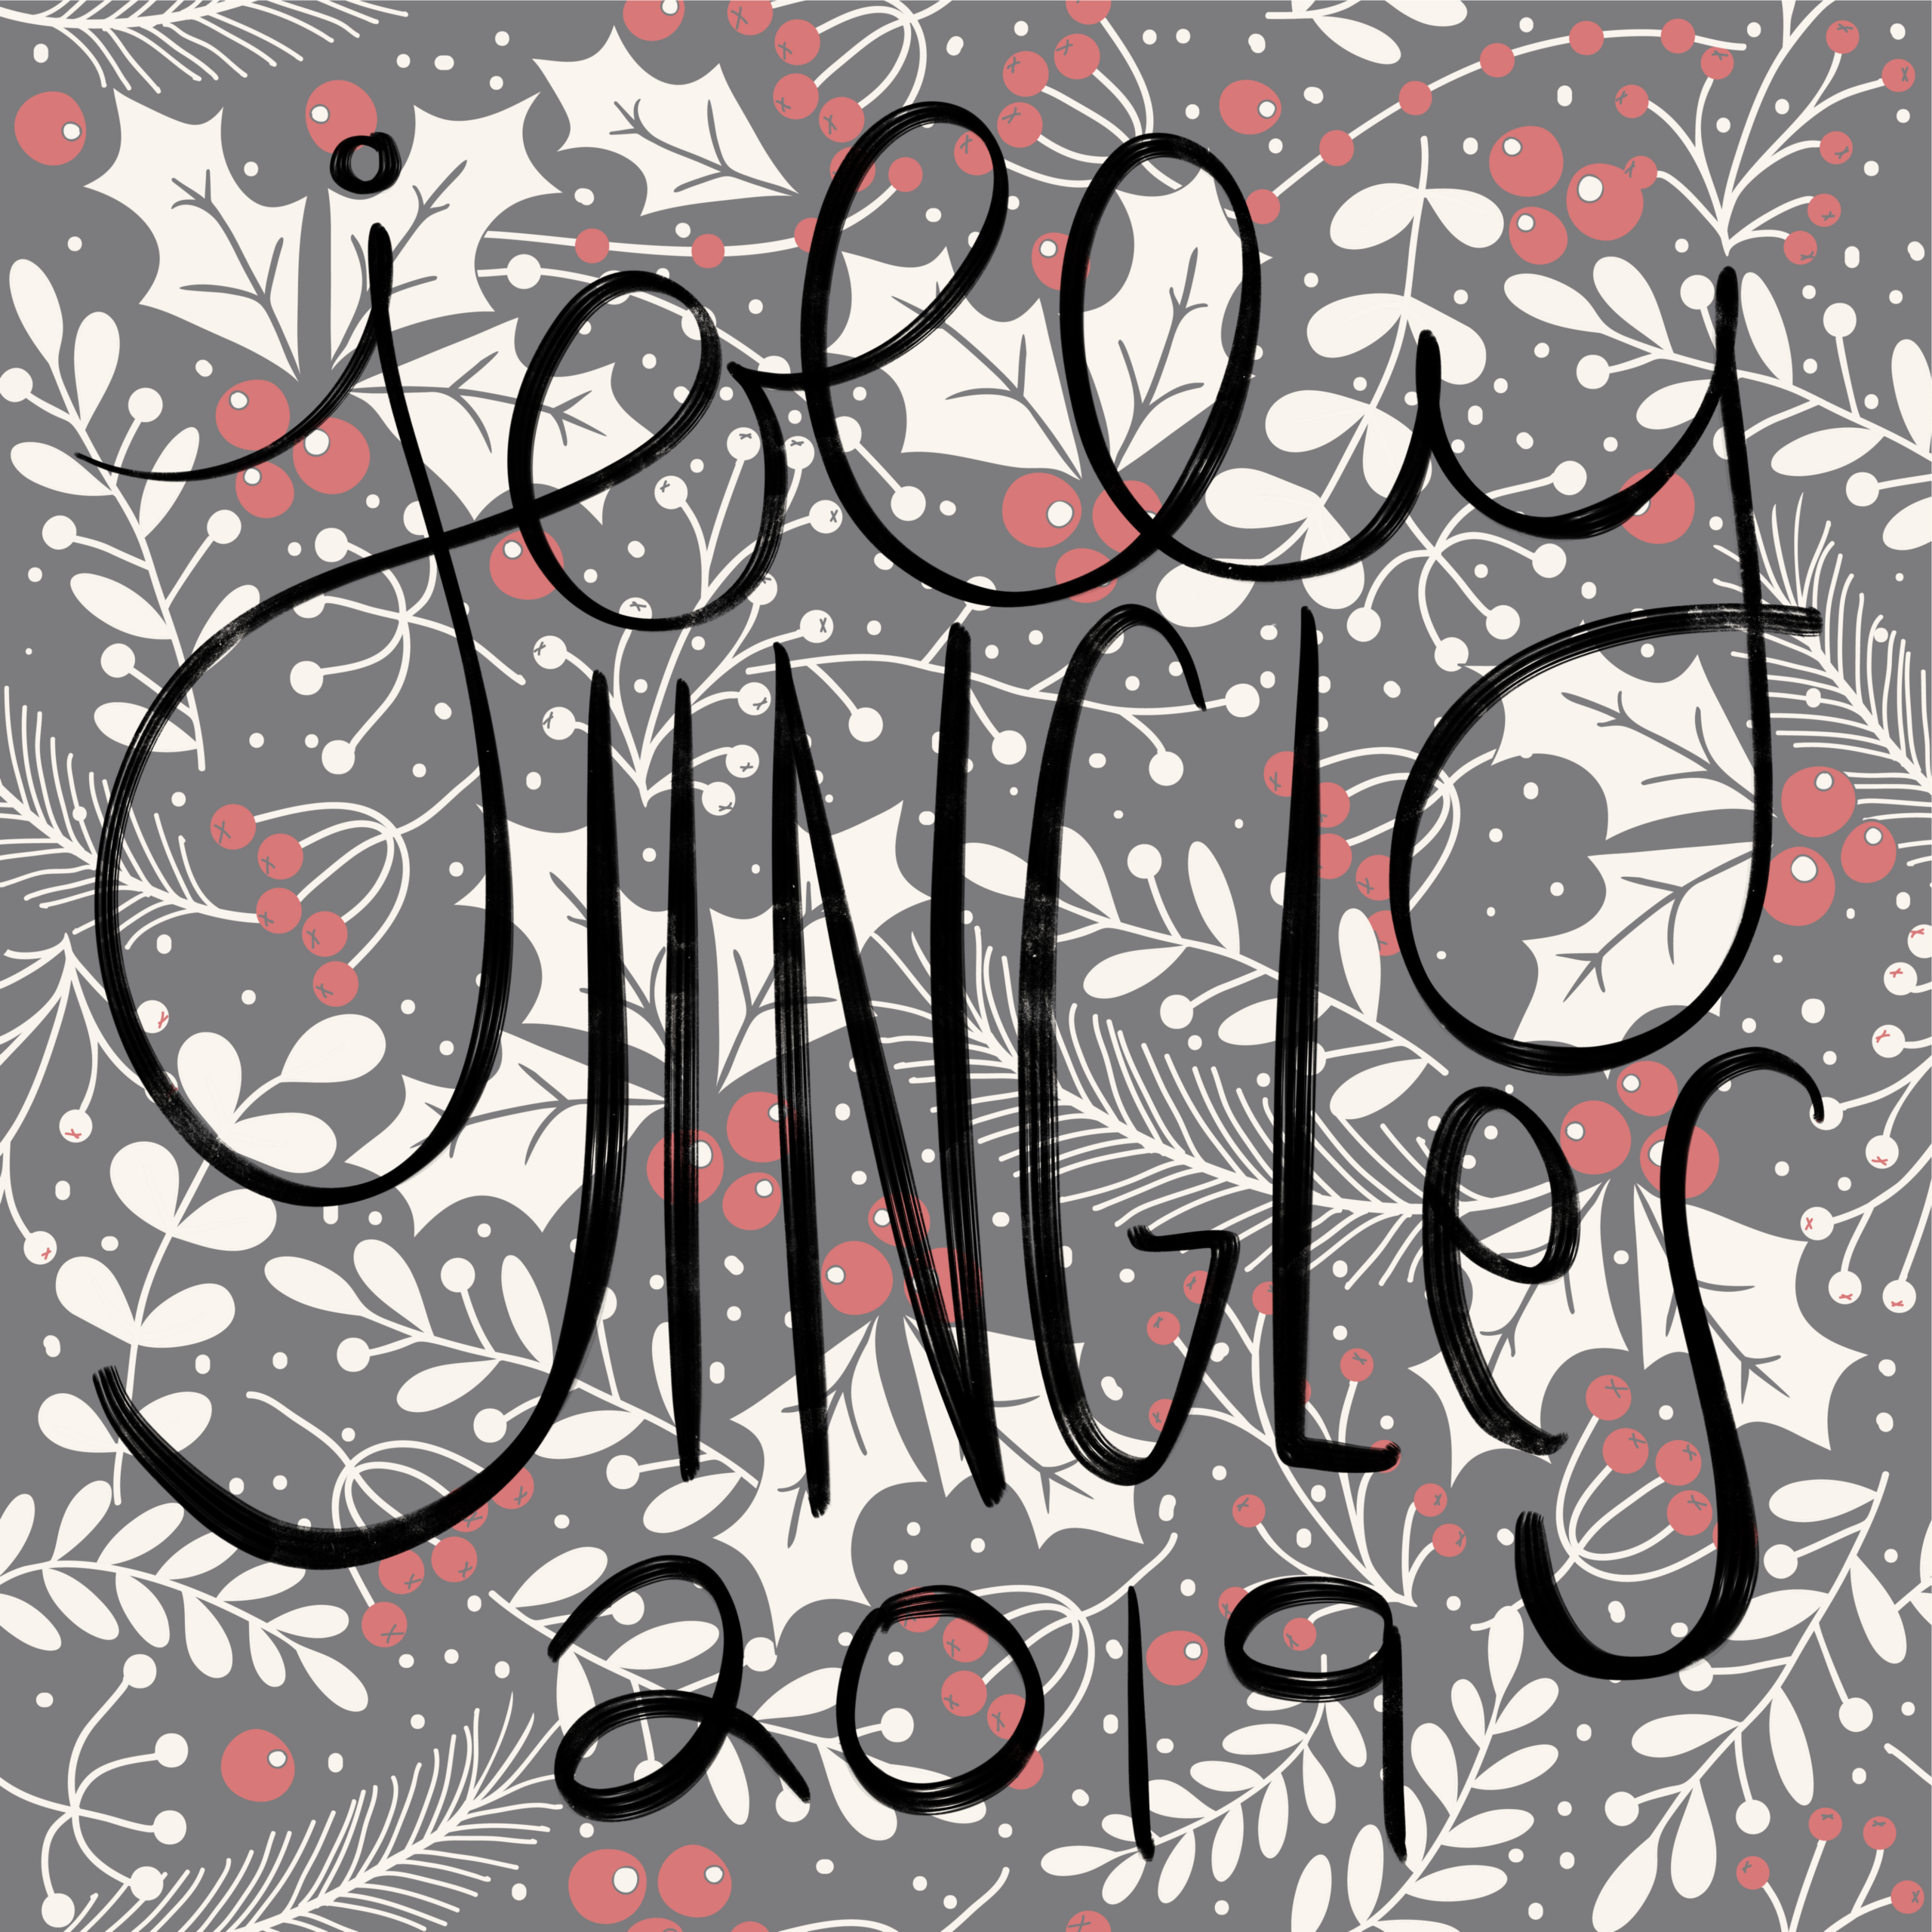 black white and red holly background with jolly jingles 2019 in handwritten script